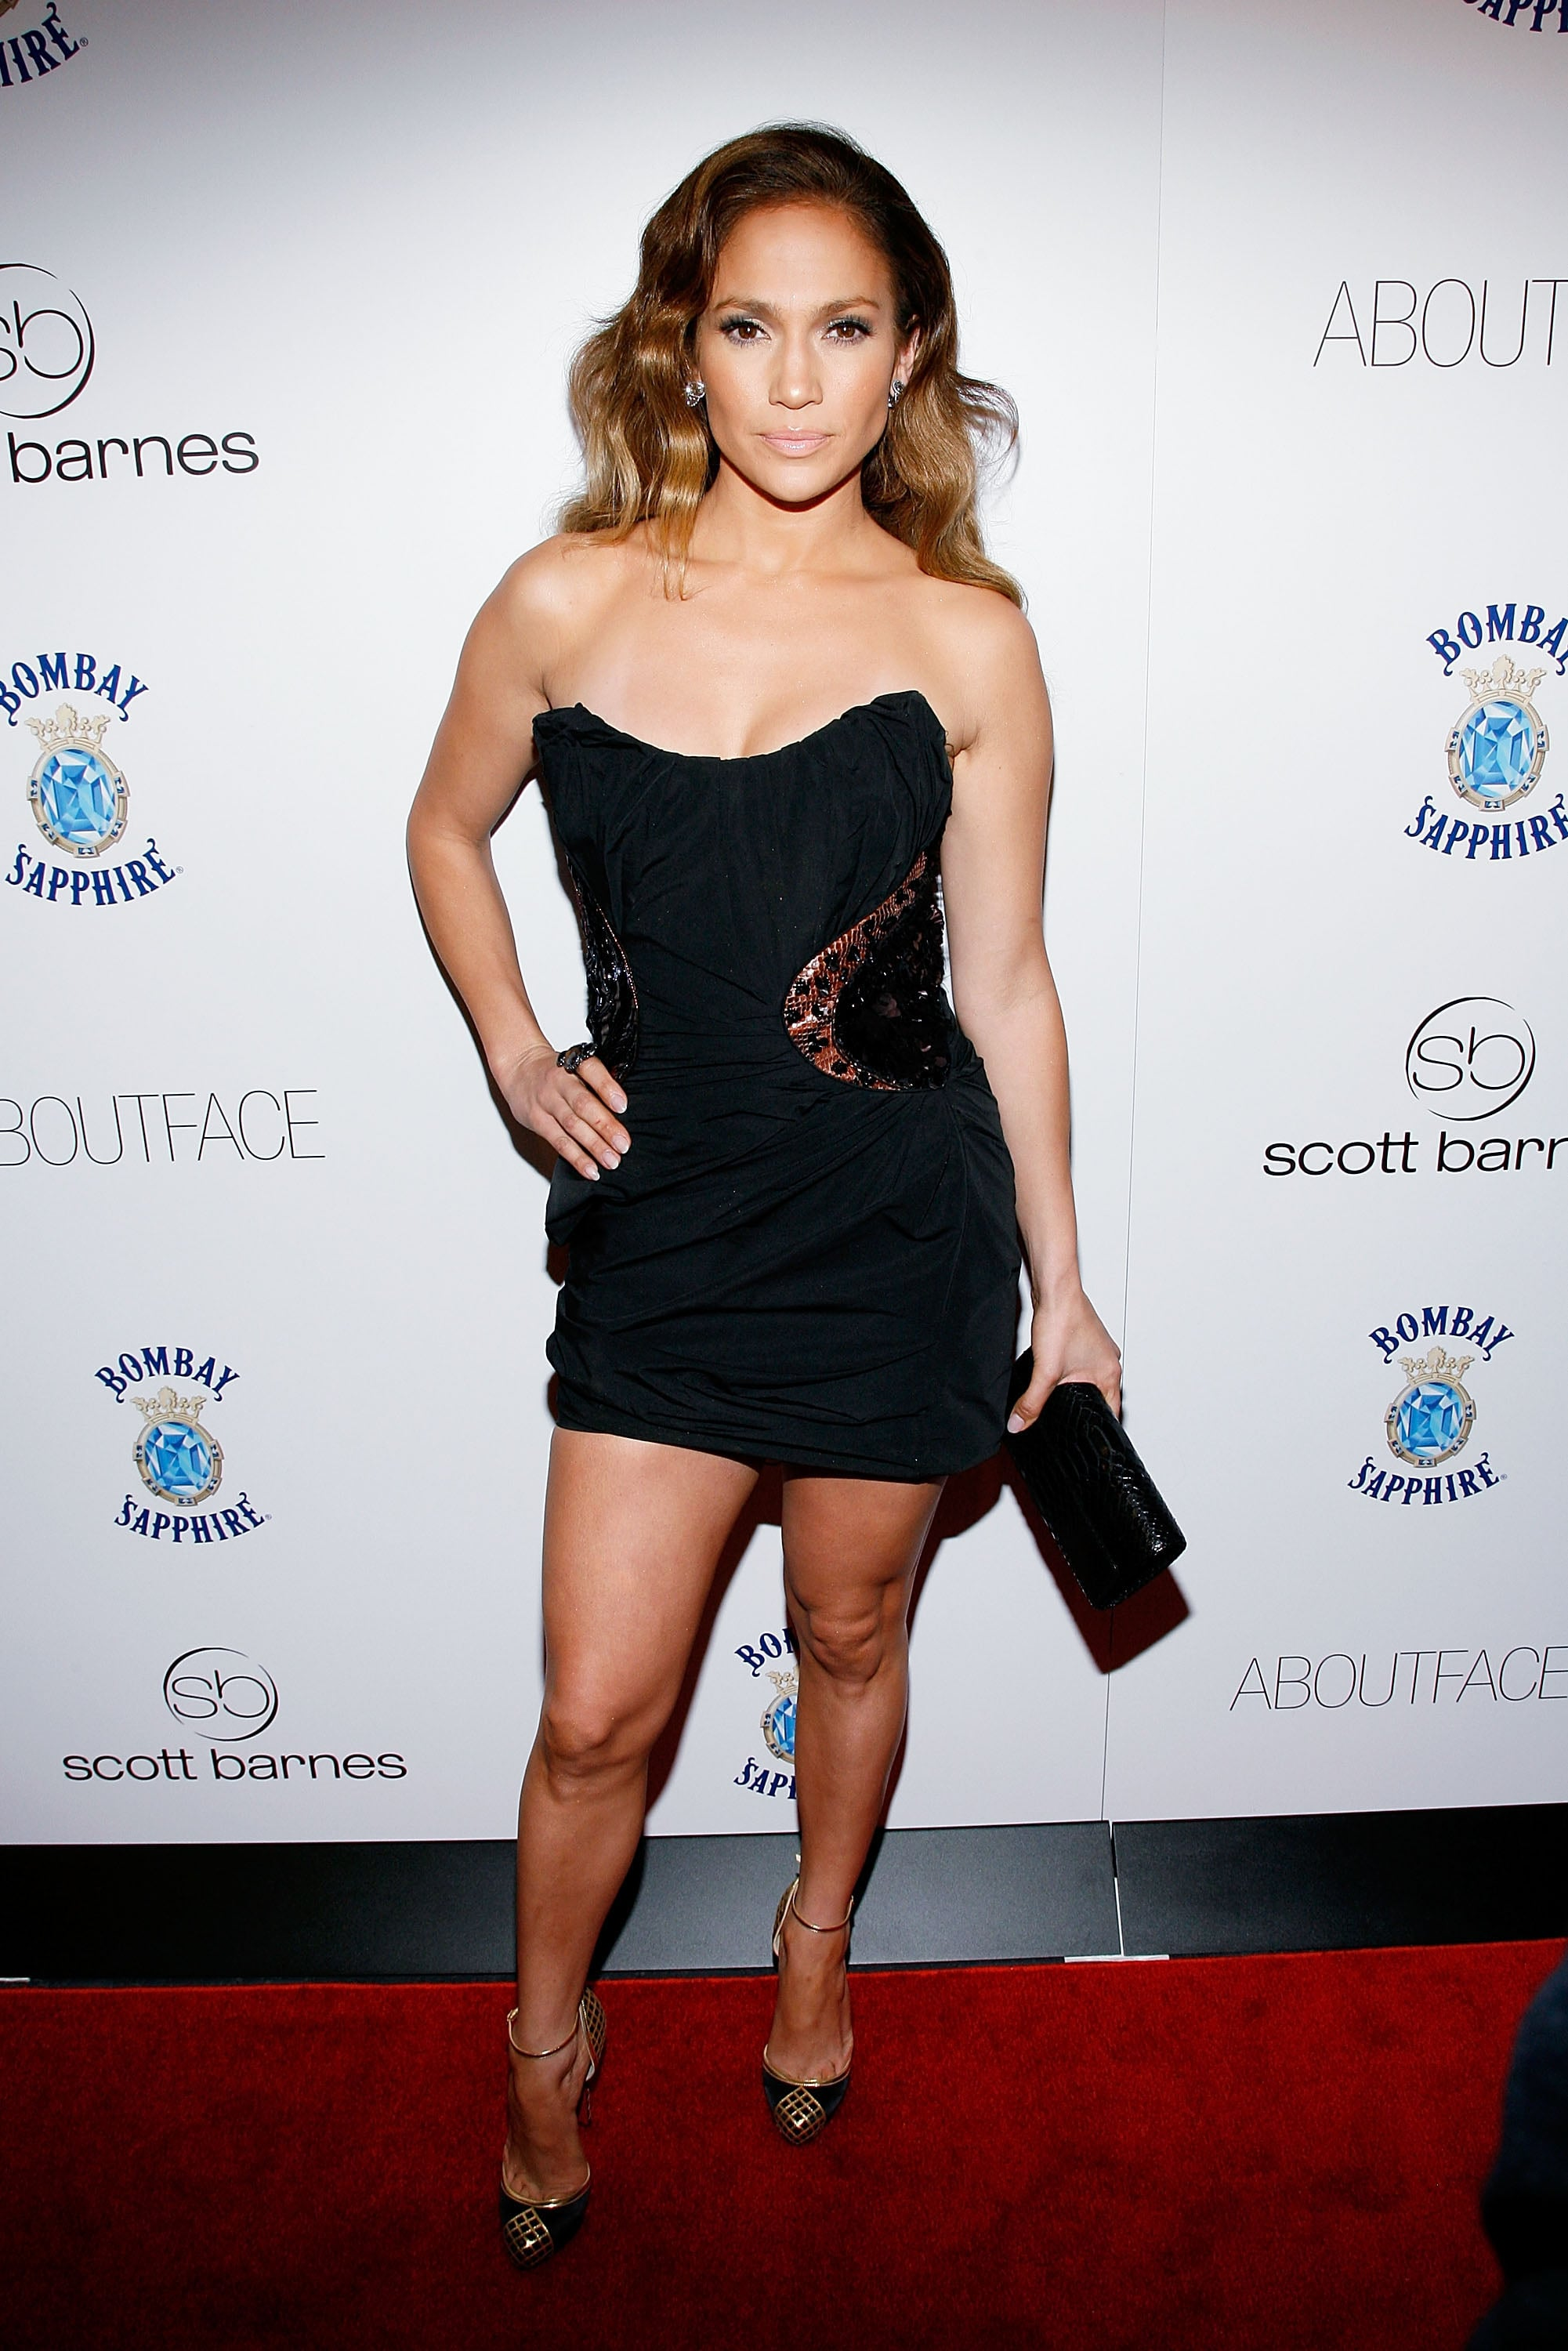 Short and super sexy in a black strapless at a book launch party in 2010.